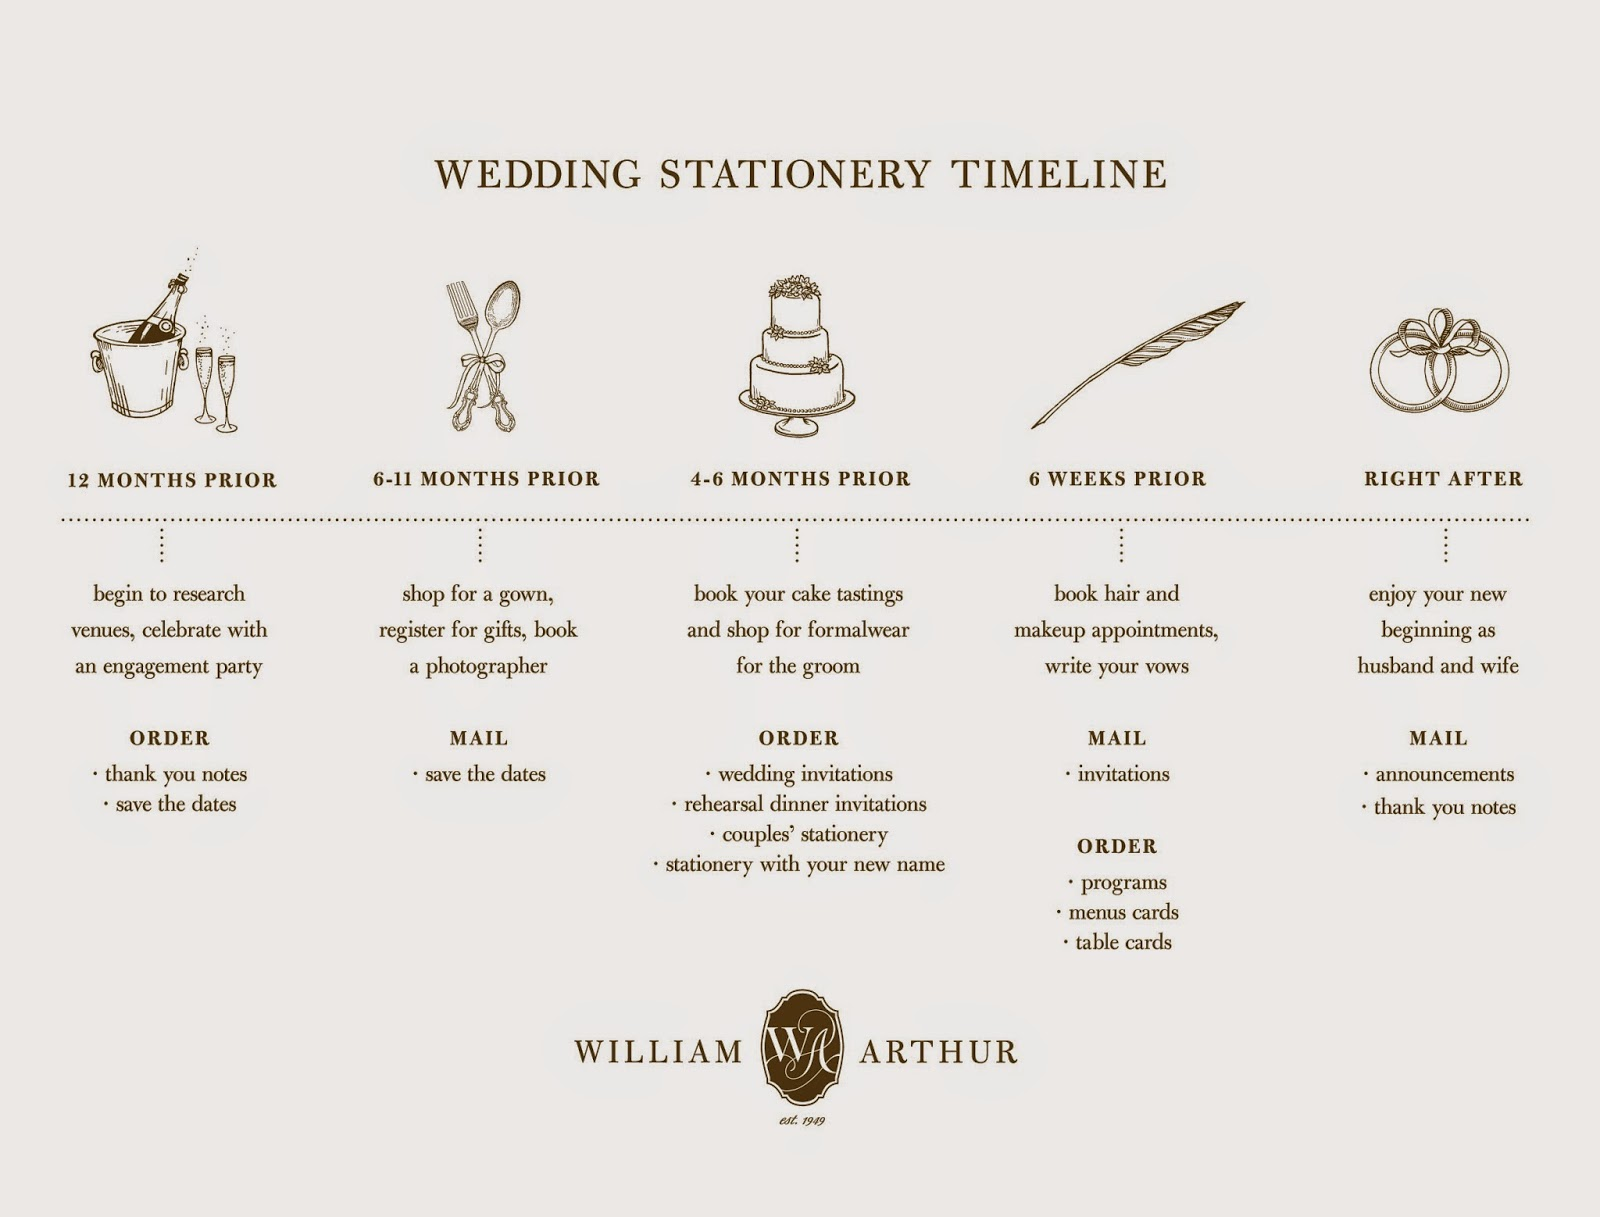 William arthur blog ordering your wedding invitations what to expect view an enlarged version of our wedding timeline junglespirit Images